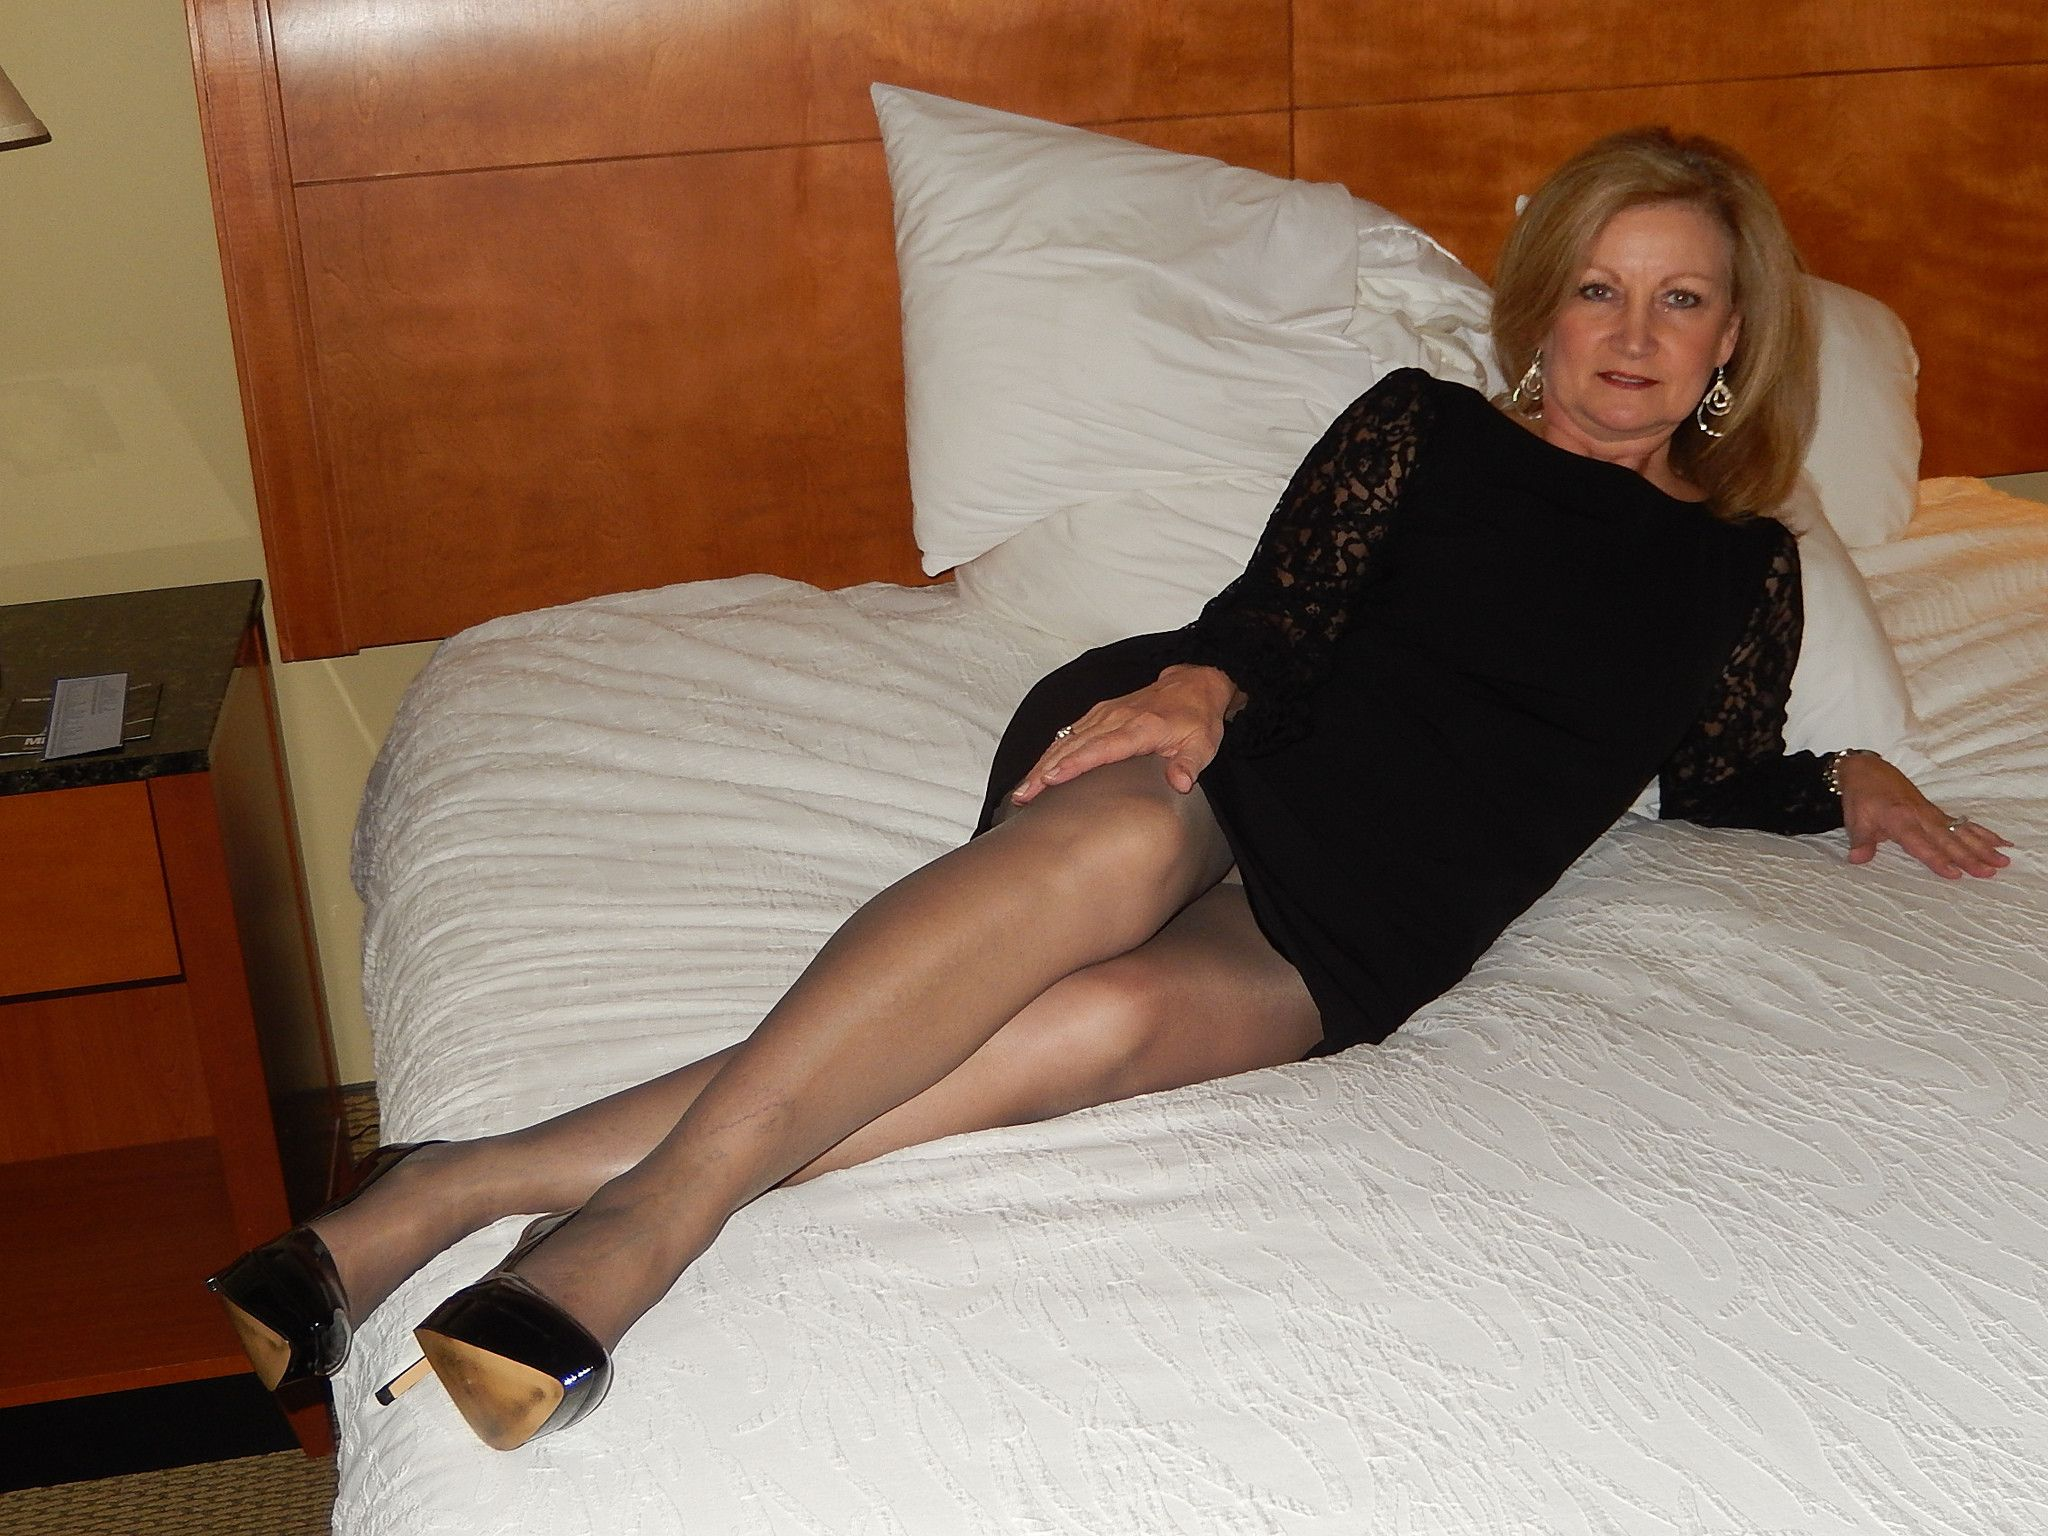 Gilf upskirt on bed | Hot mature ladies, milfs and gilfs ...